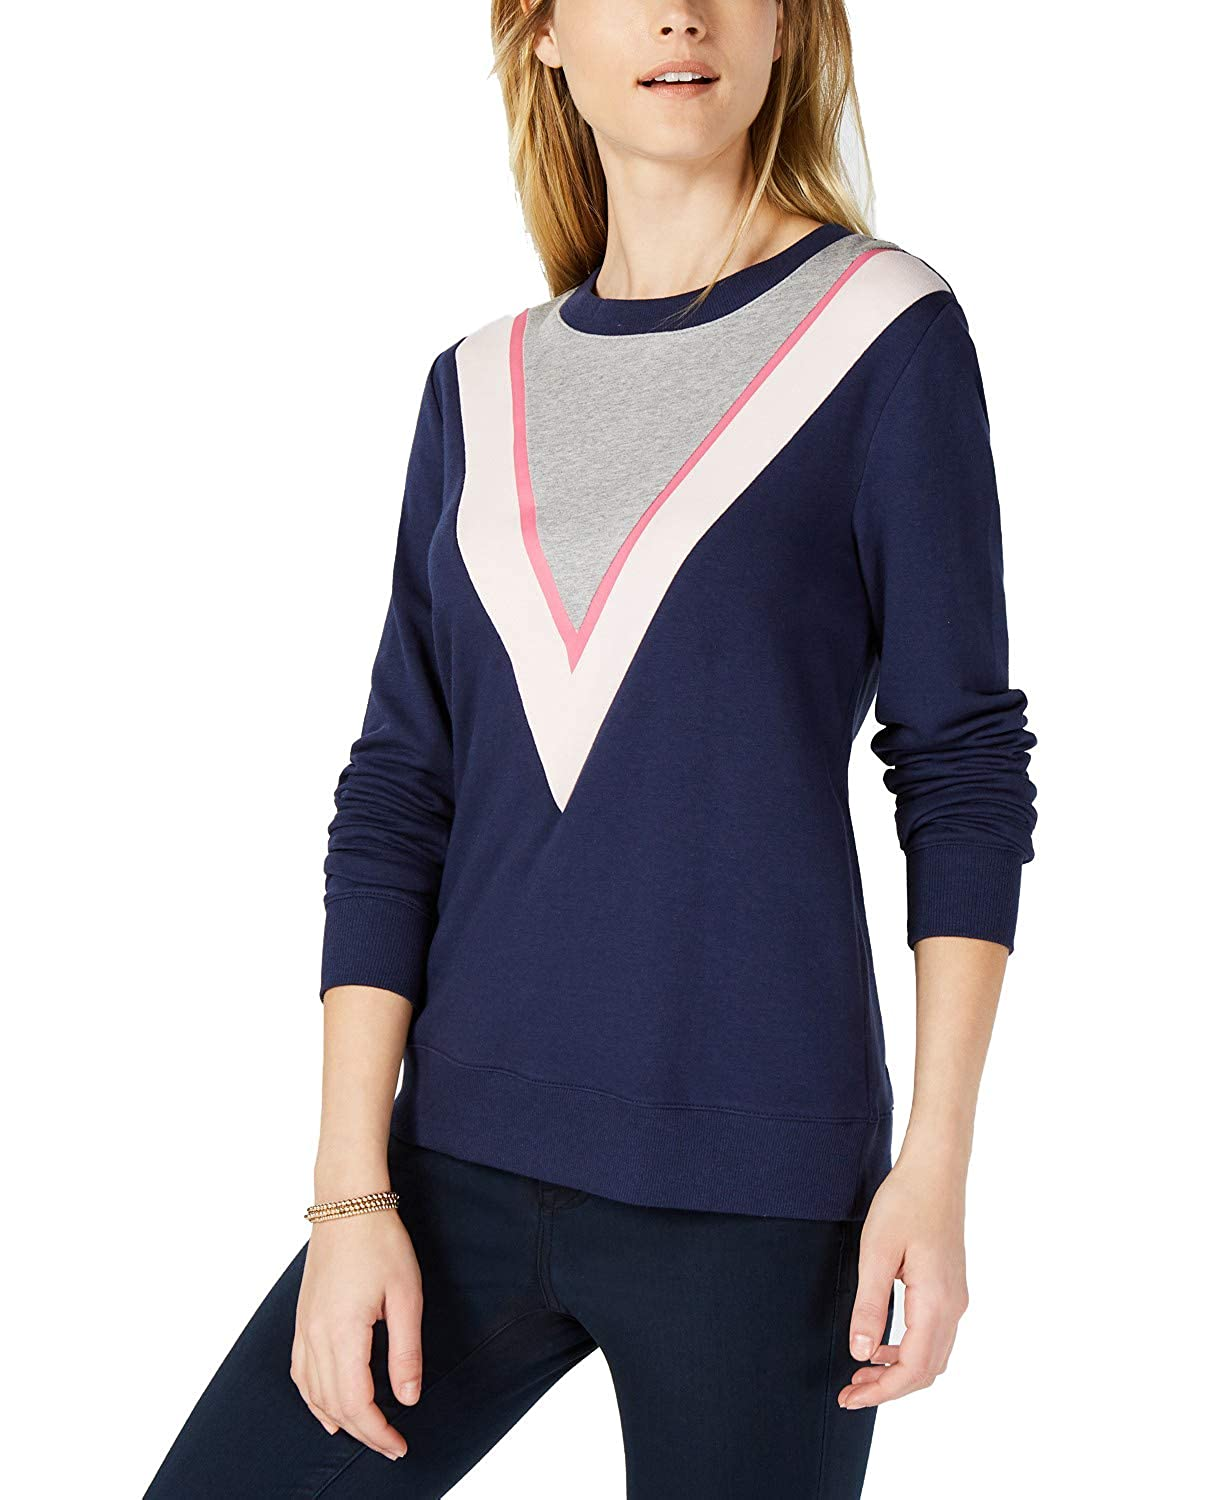 Ladies Colorful 1920s Sweaters and Cardigans History Maison Jules Womens Colorblock Chevron Sweatshirt Blue Notte Combo $17.99 AT vintagedancer.com